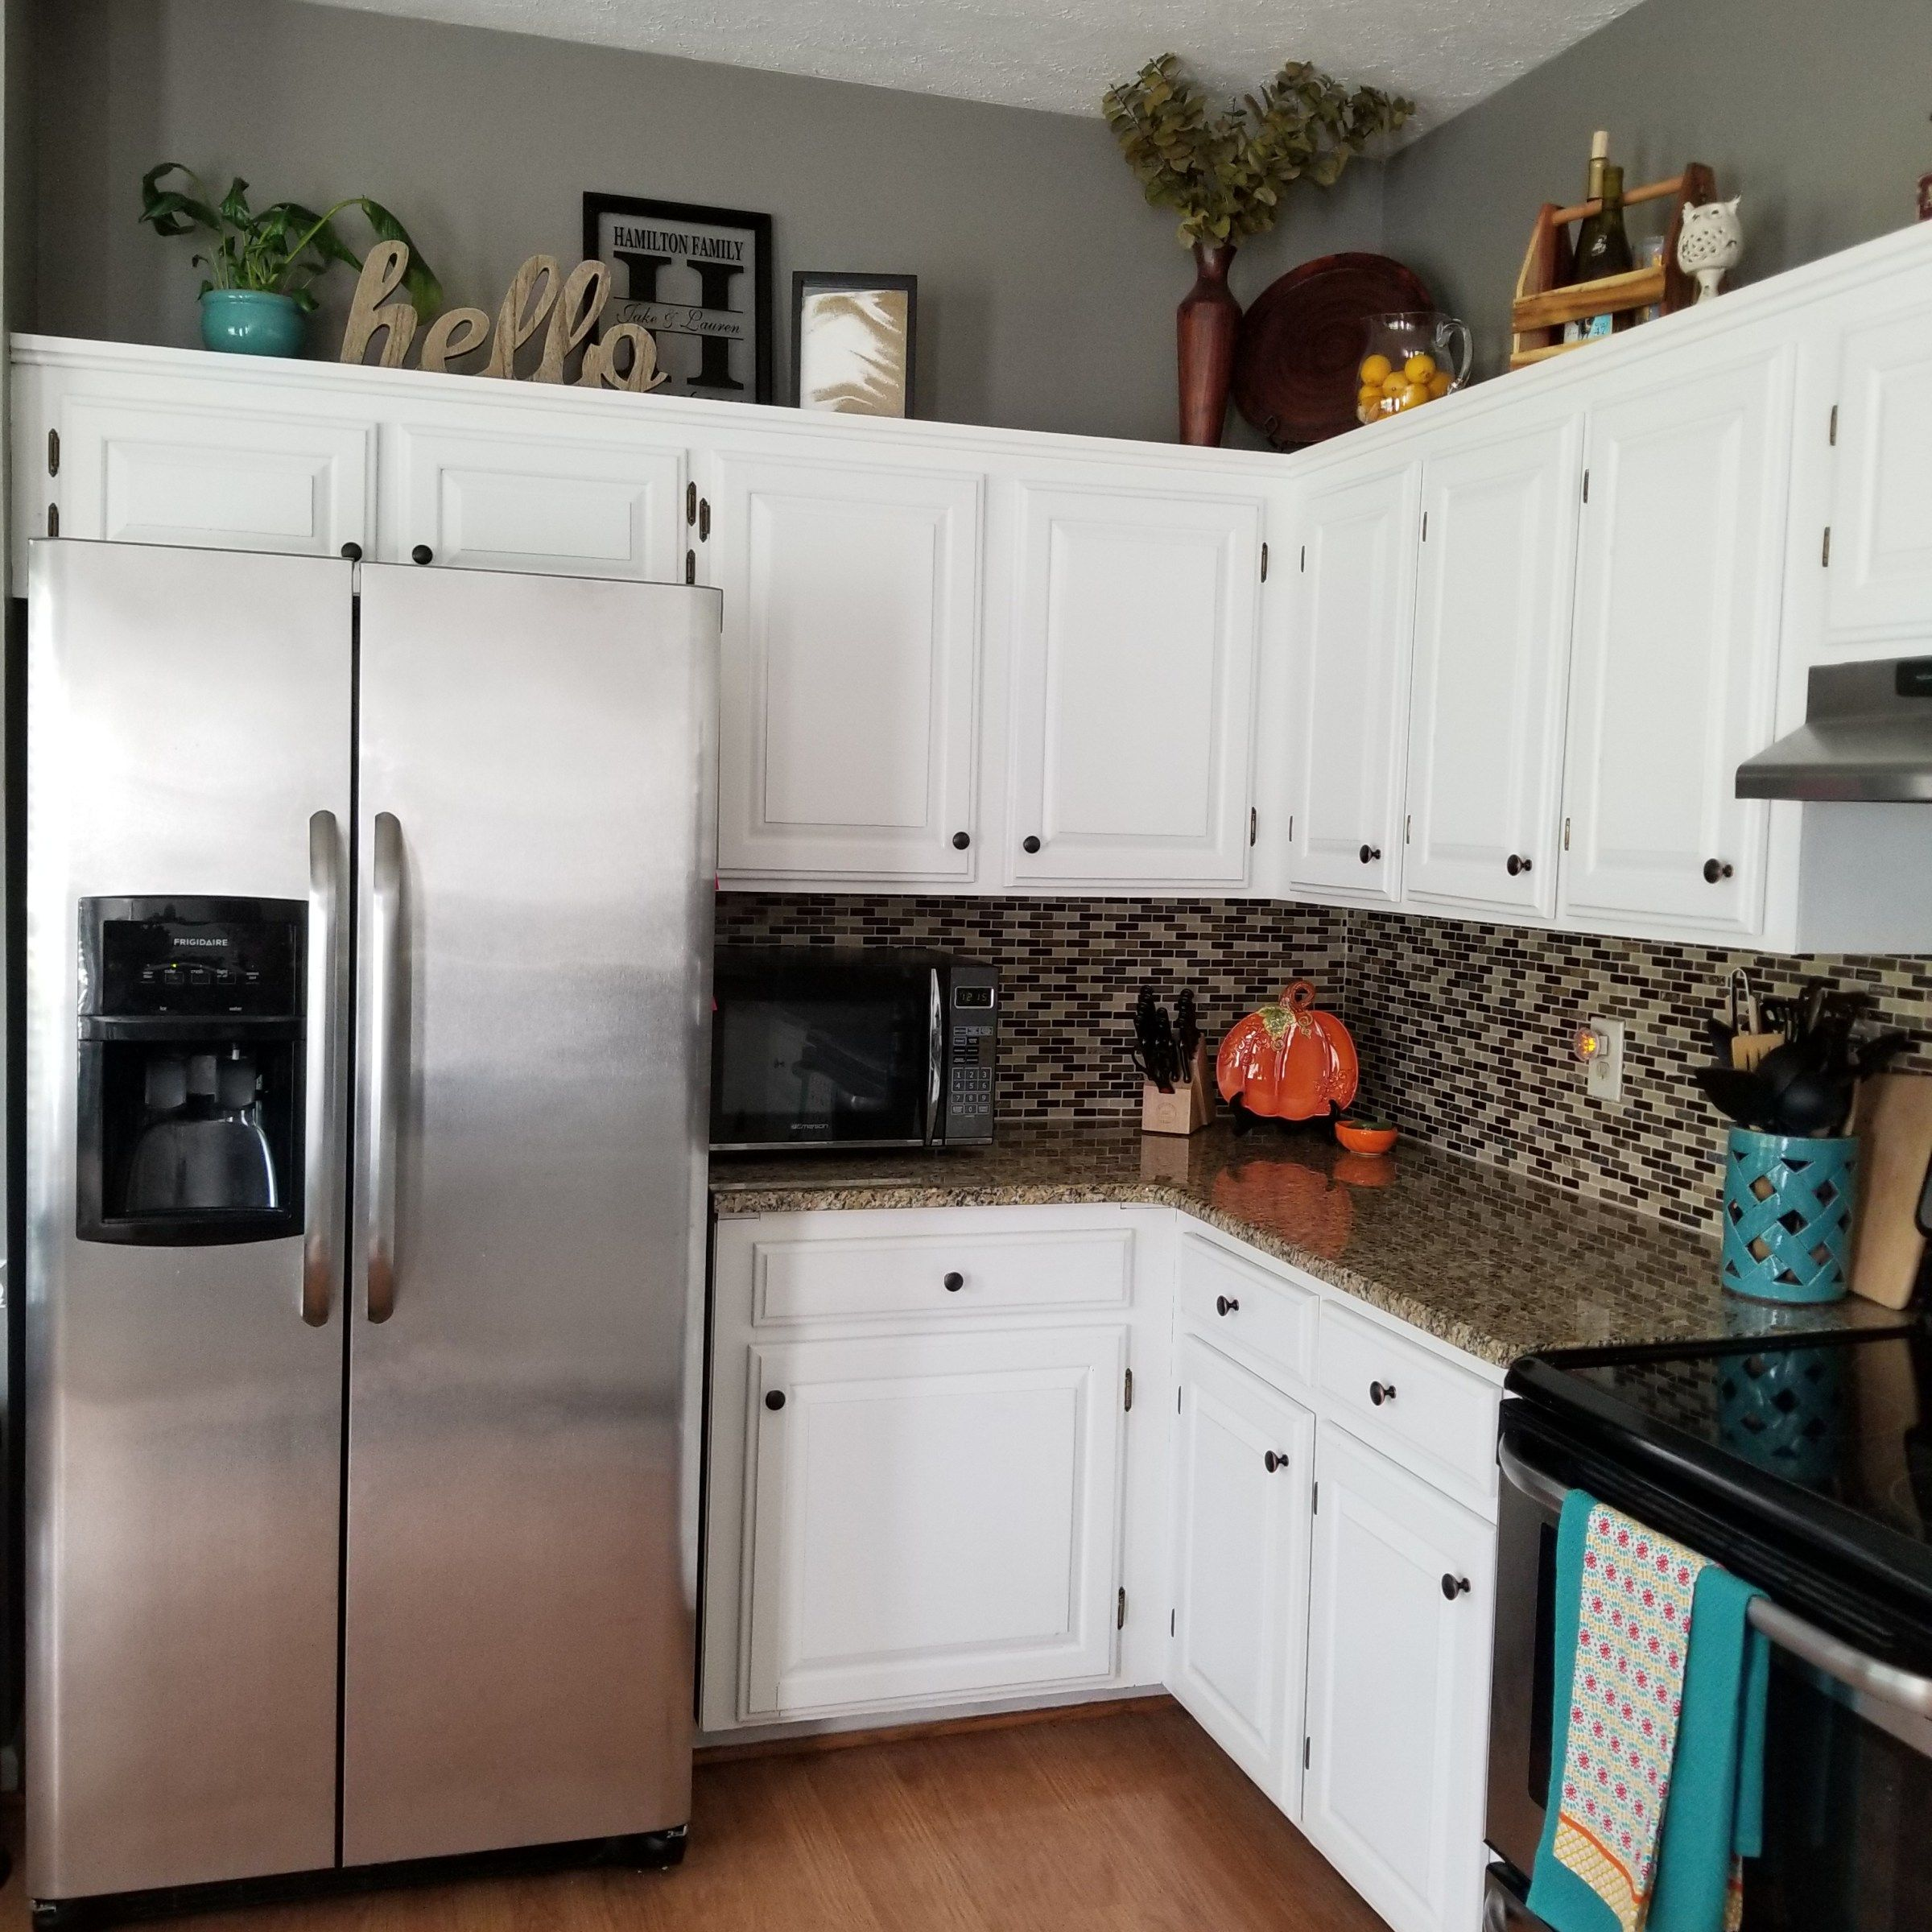 Space Above Kitchen Cabinets: How To Decorate Above Kitchen Cabinets